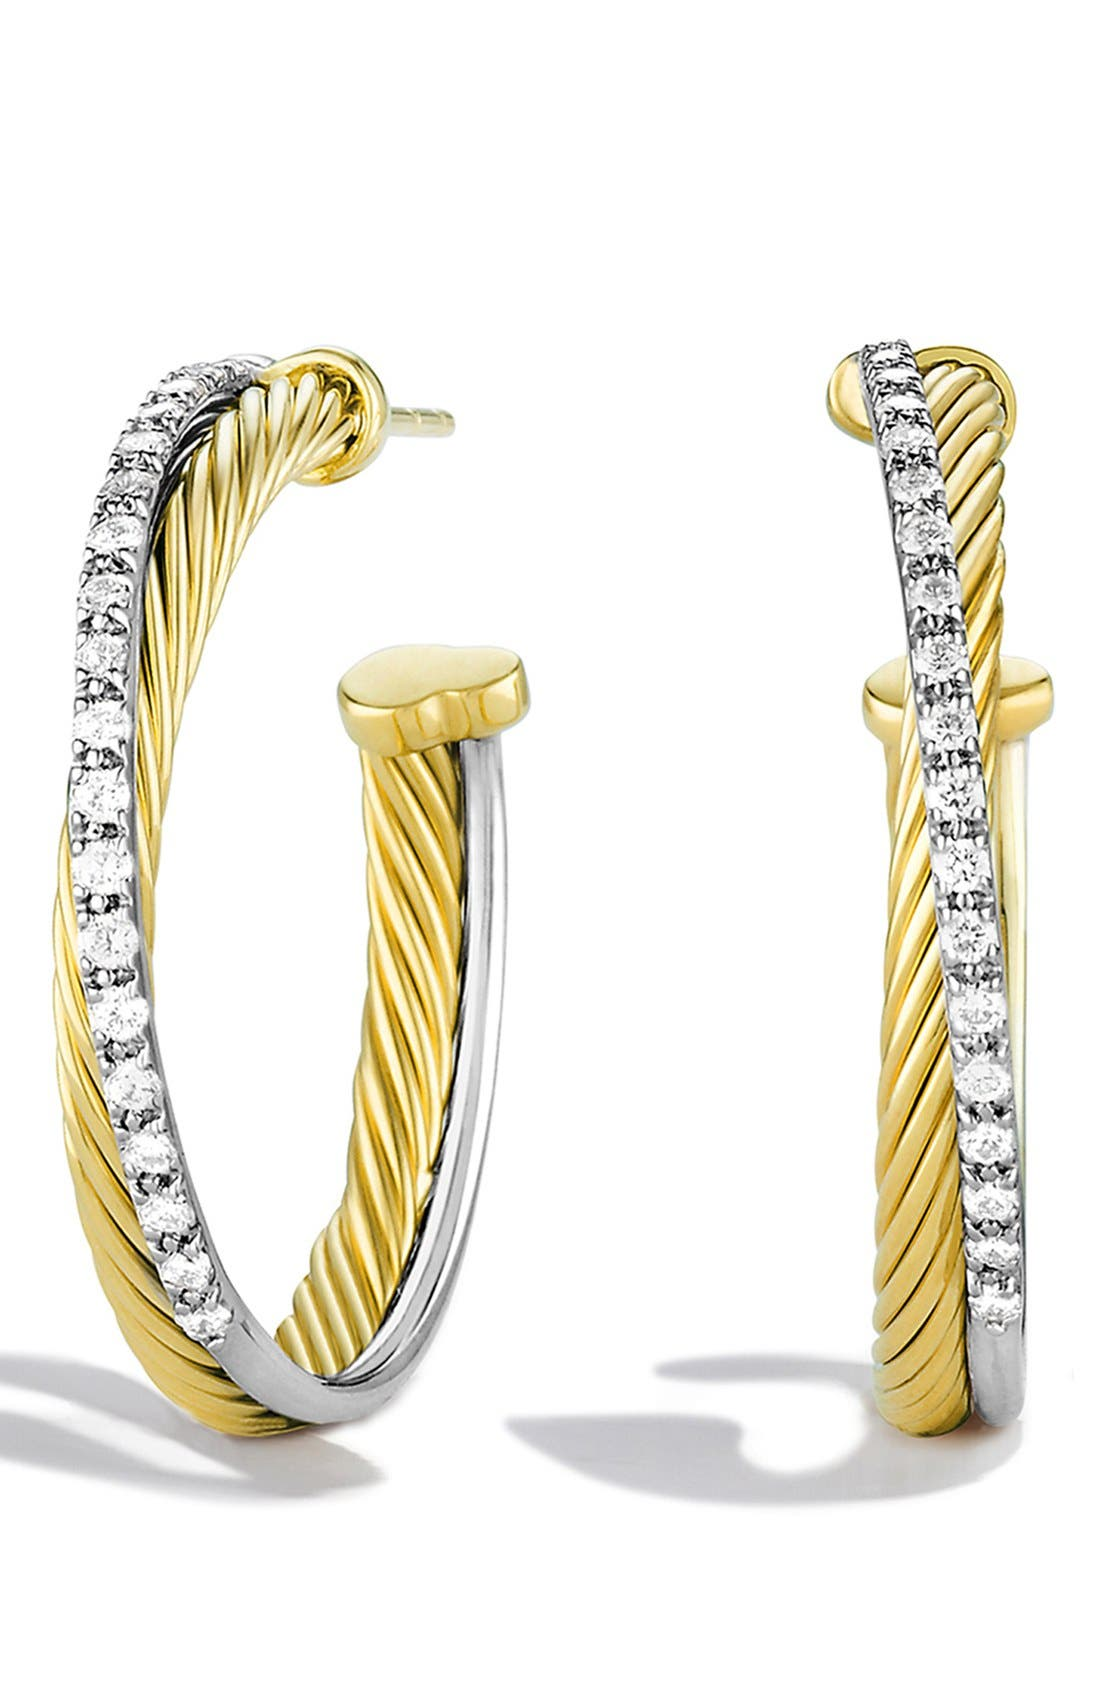 Main Image - David Yurman 'Crossover' Medium Hoop Earrings with Diamonds in Gold